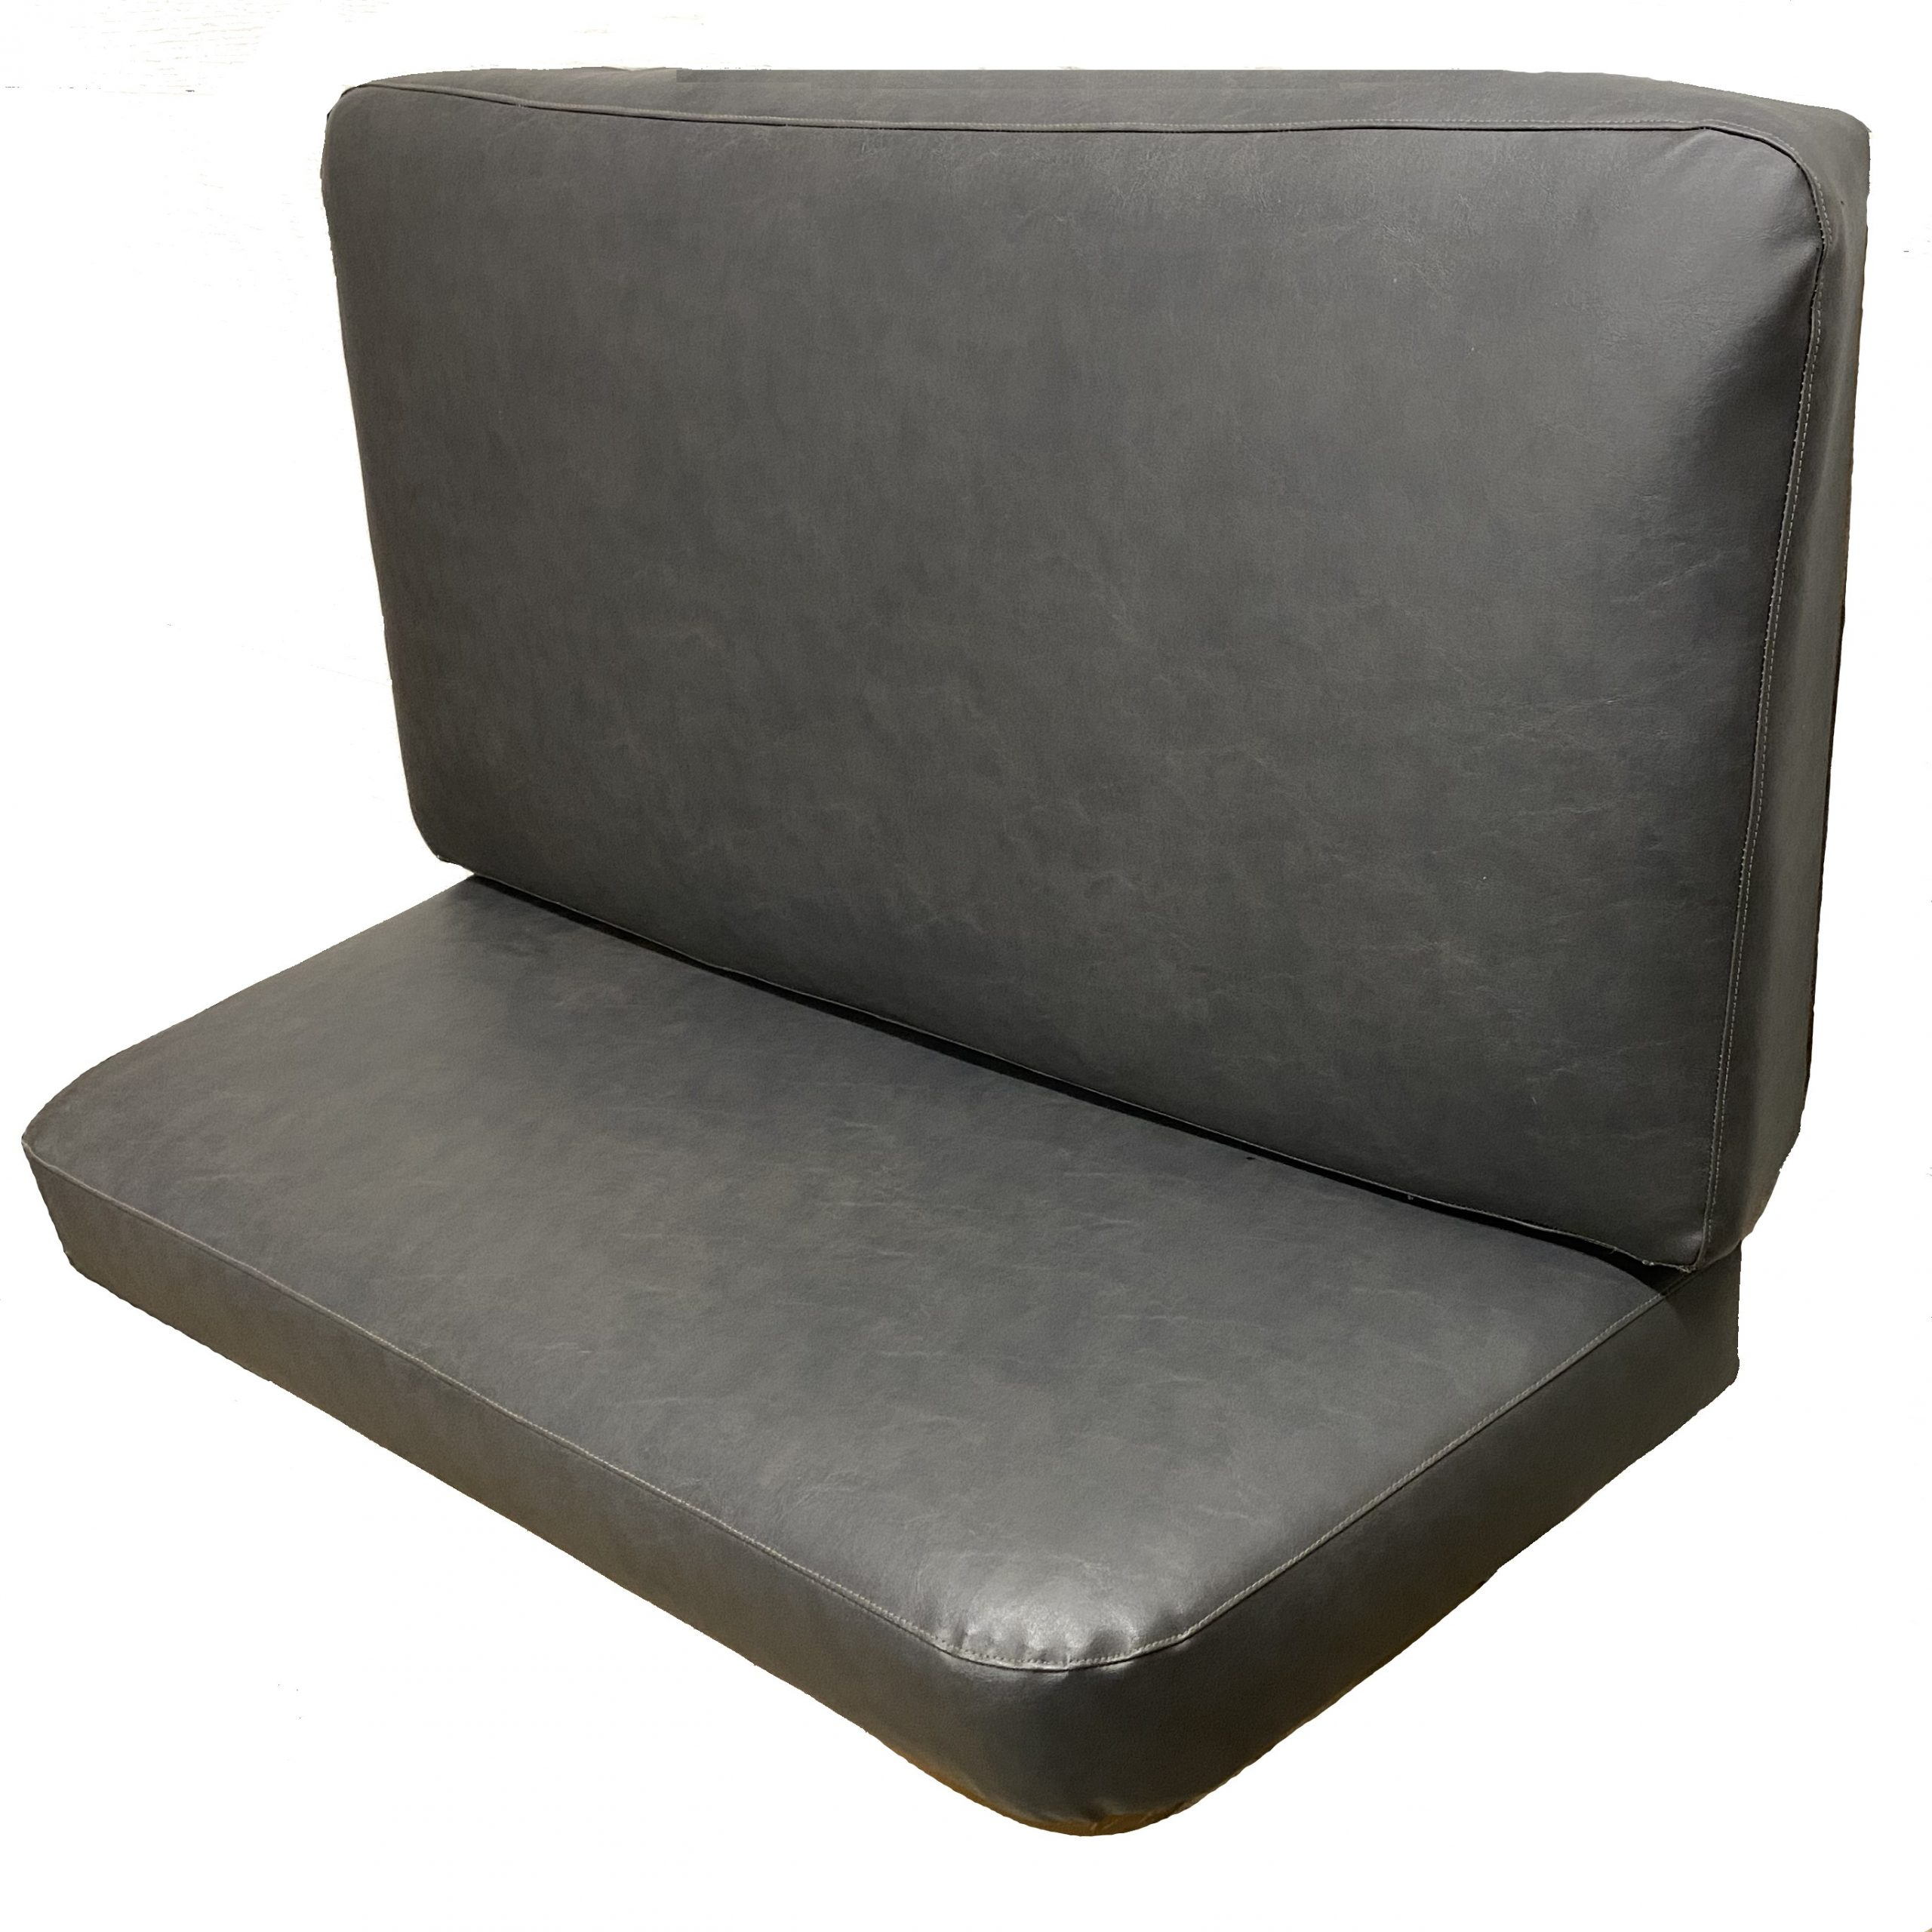 36-38 Seat Covers – Back And Base Complete